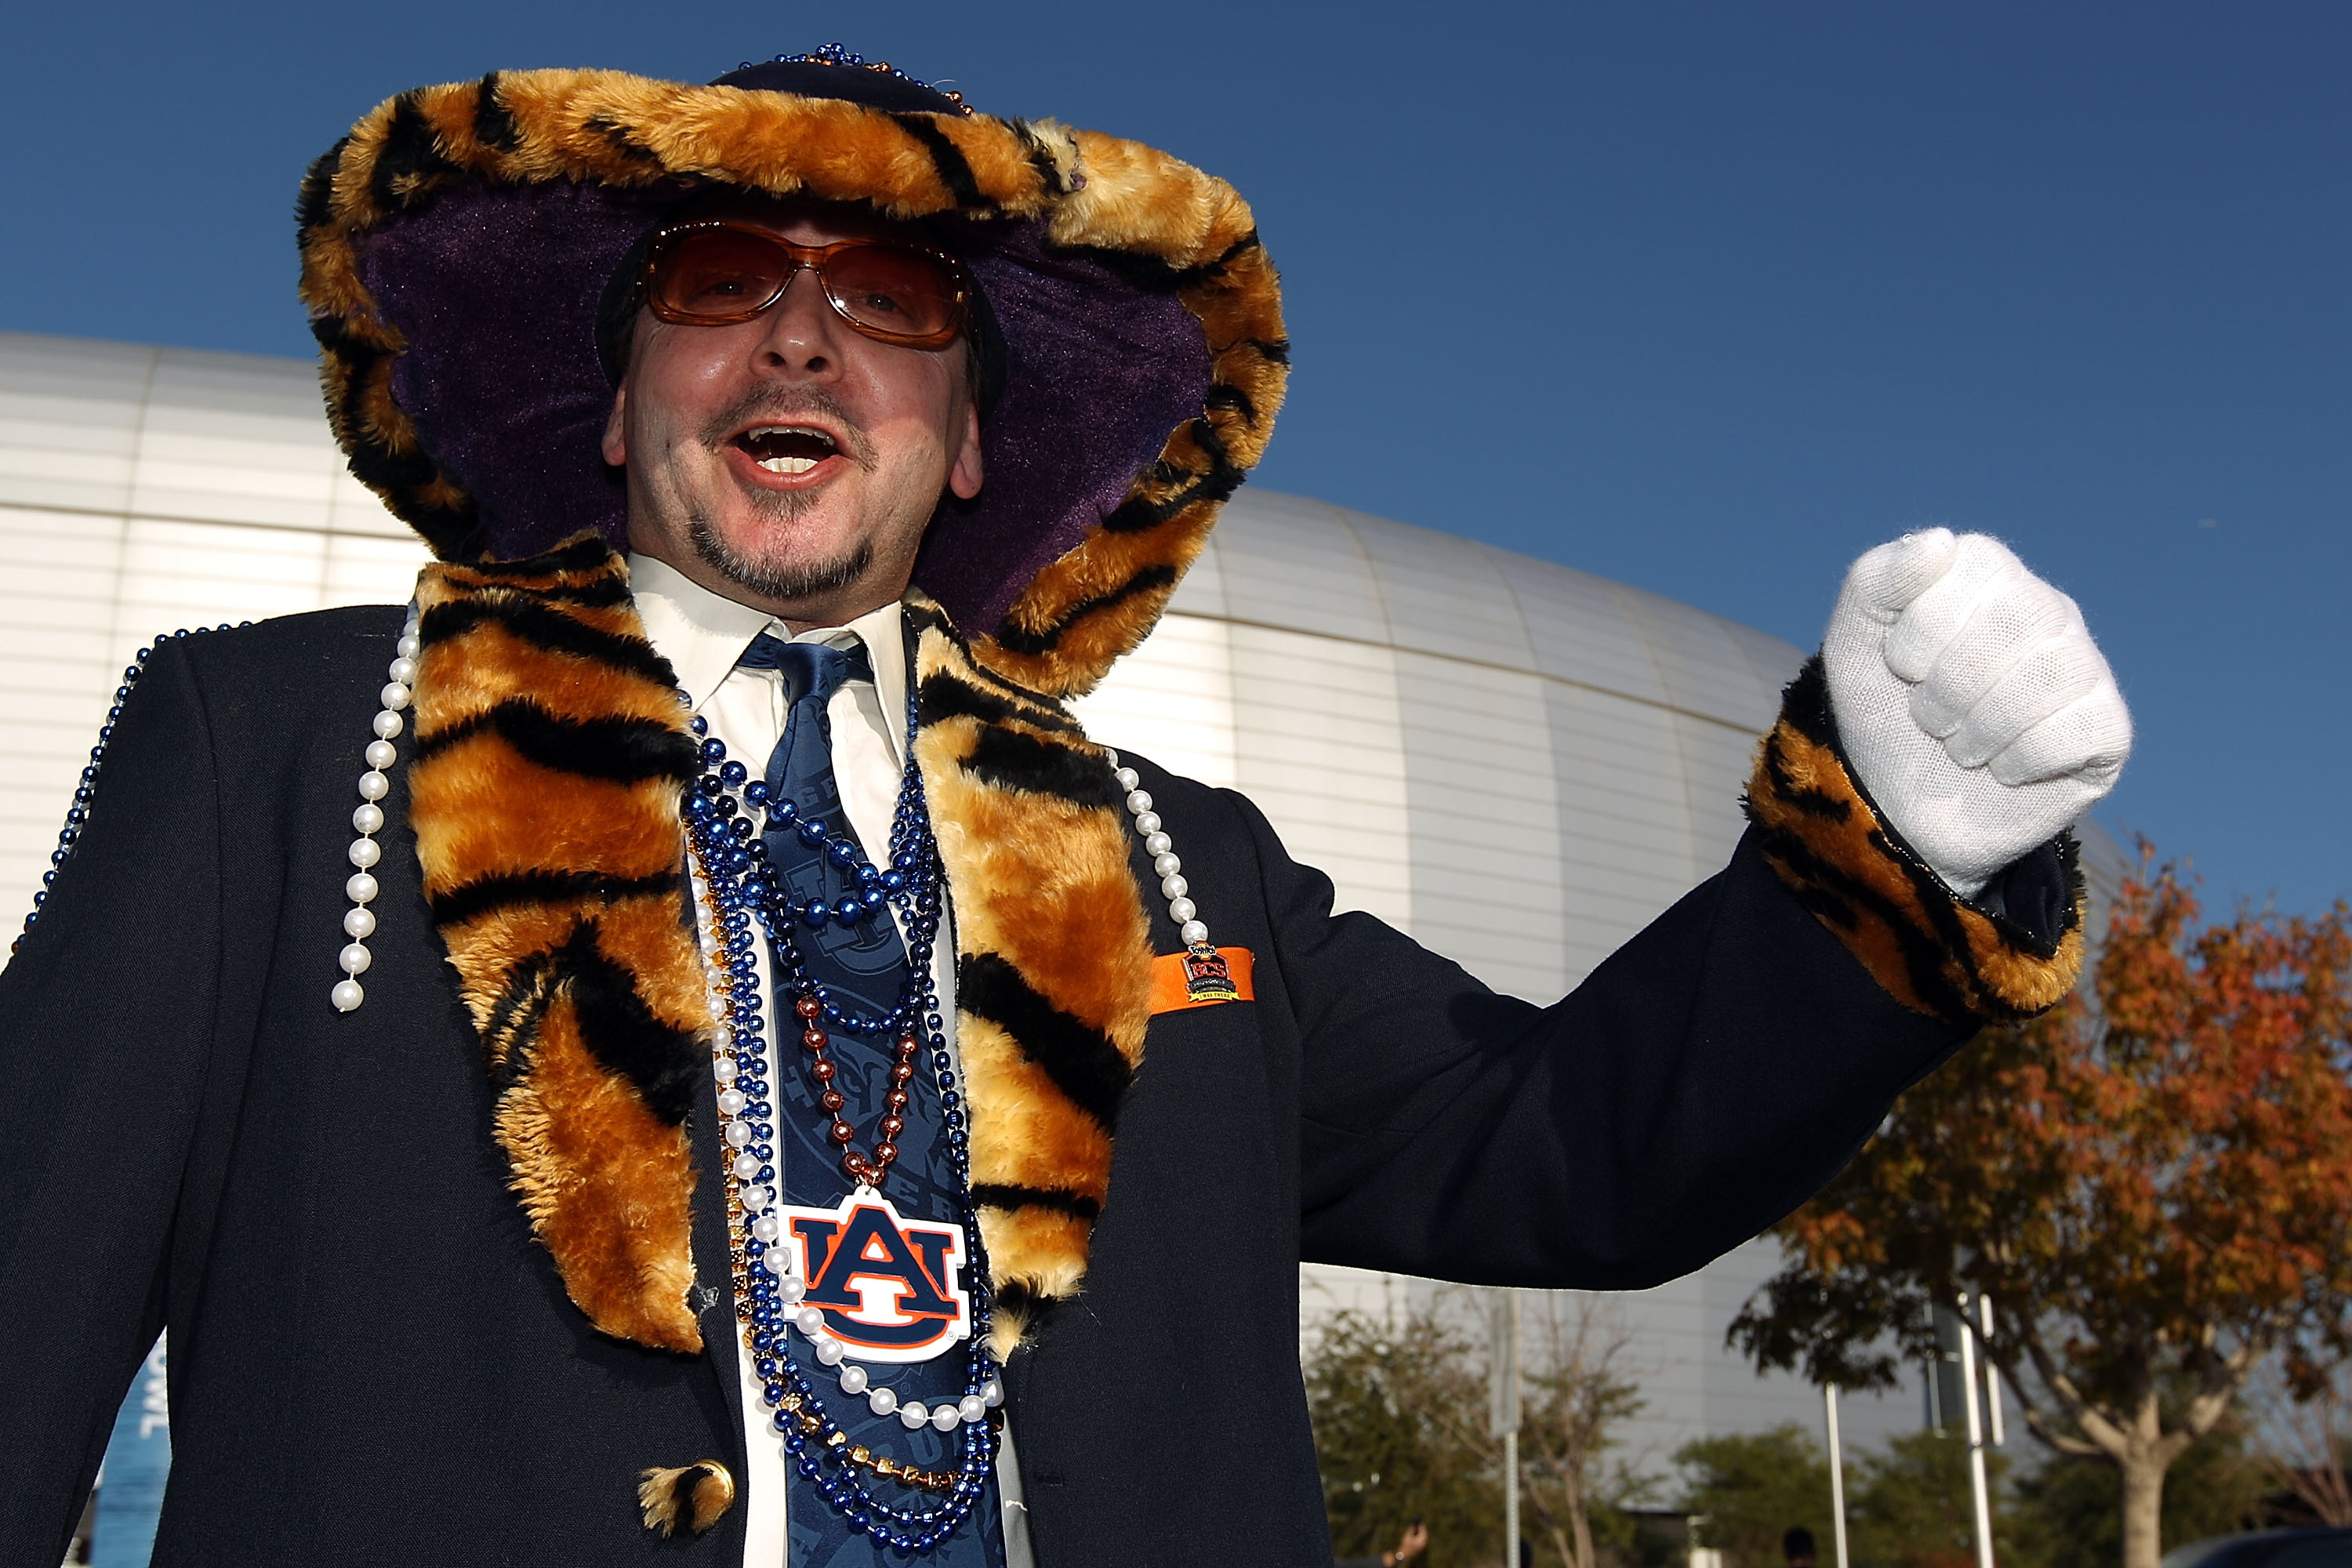 GLENDALE, AZ - JANUARY 10:  Auburn Tigers fan Stan White poses outside before the Tostitos BCS National Championship Game between the Tigers and the Oregon Ducks at University of Phoenix Stadium on January 10, 2011 in Glendale, Arizona.  (Photo by Christi